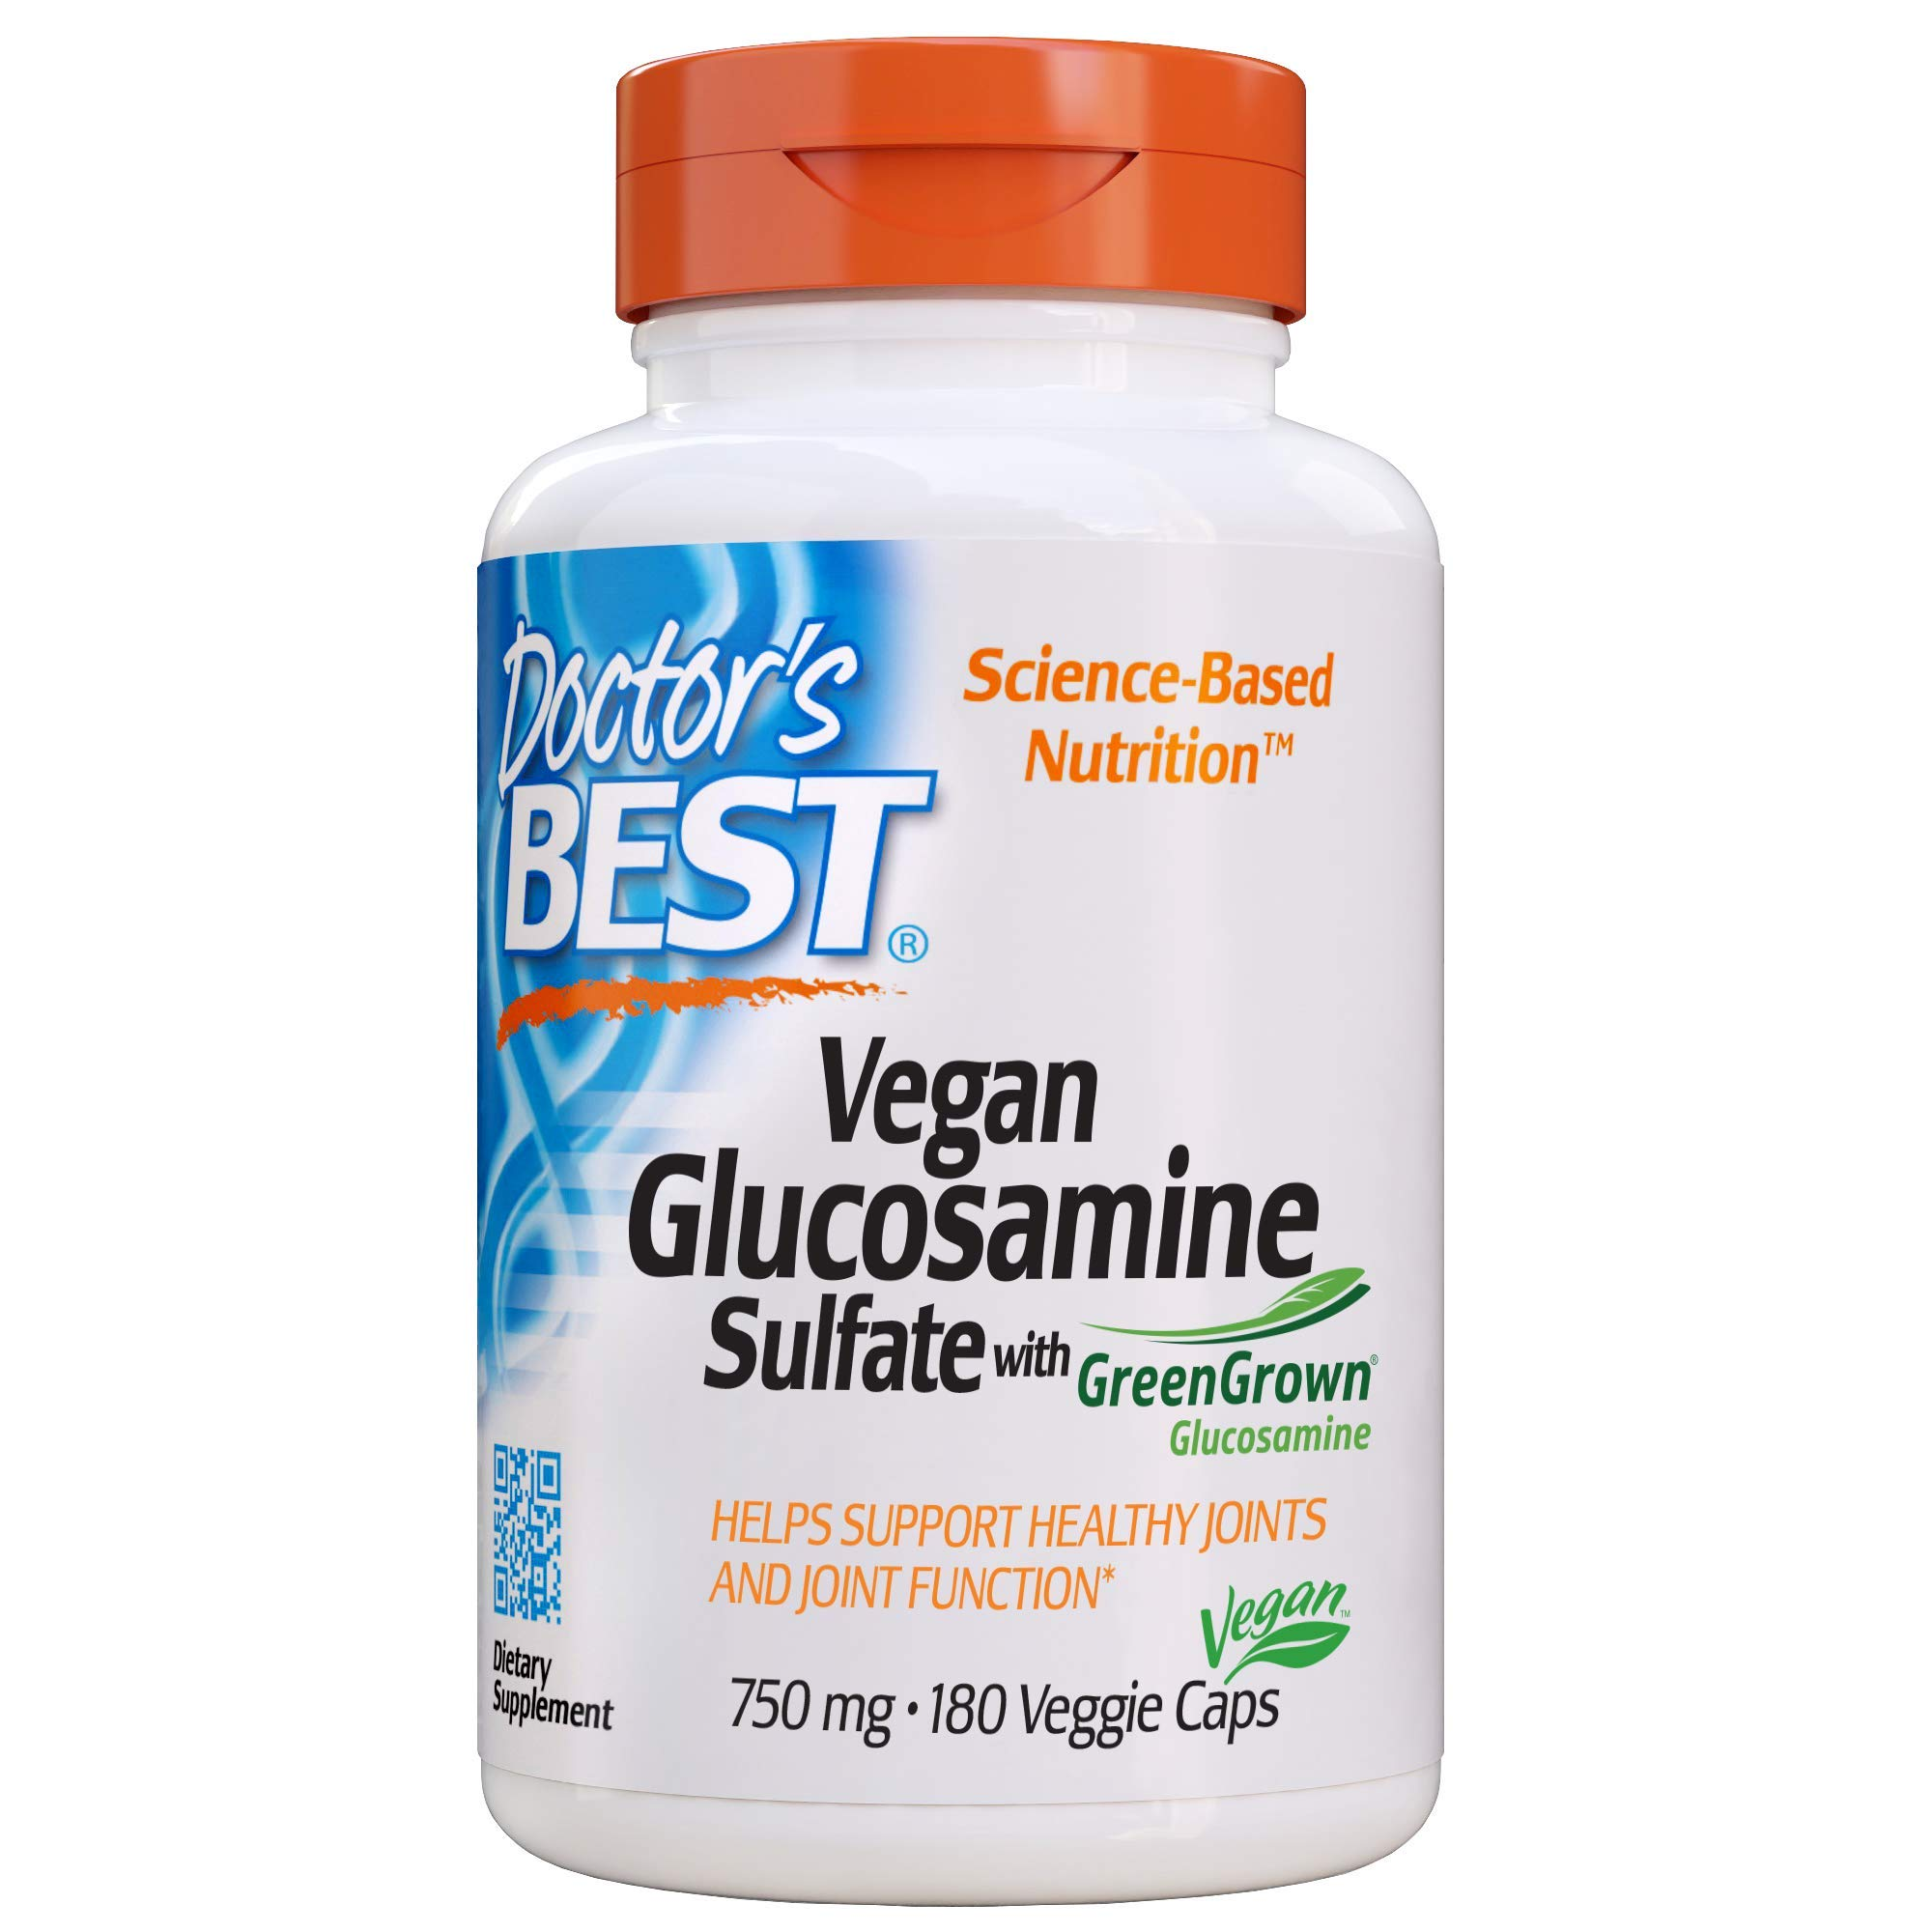 Doctor's Best Vegan Glucosamine Sulfate, Joint Support, Non-GMO, Vegan, Gluten Free, Soy Free, 750 mg 180 Veggie Caps